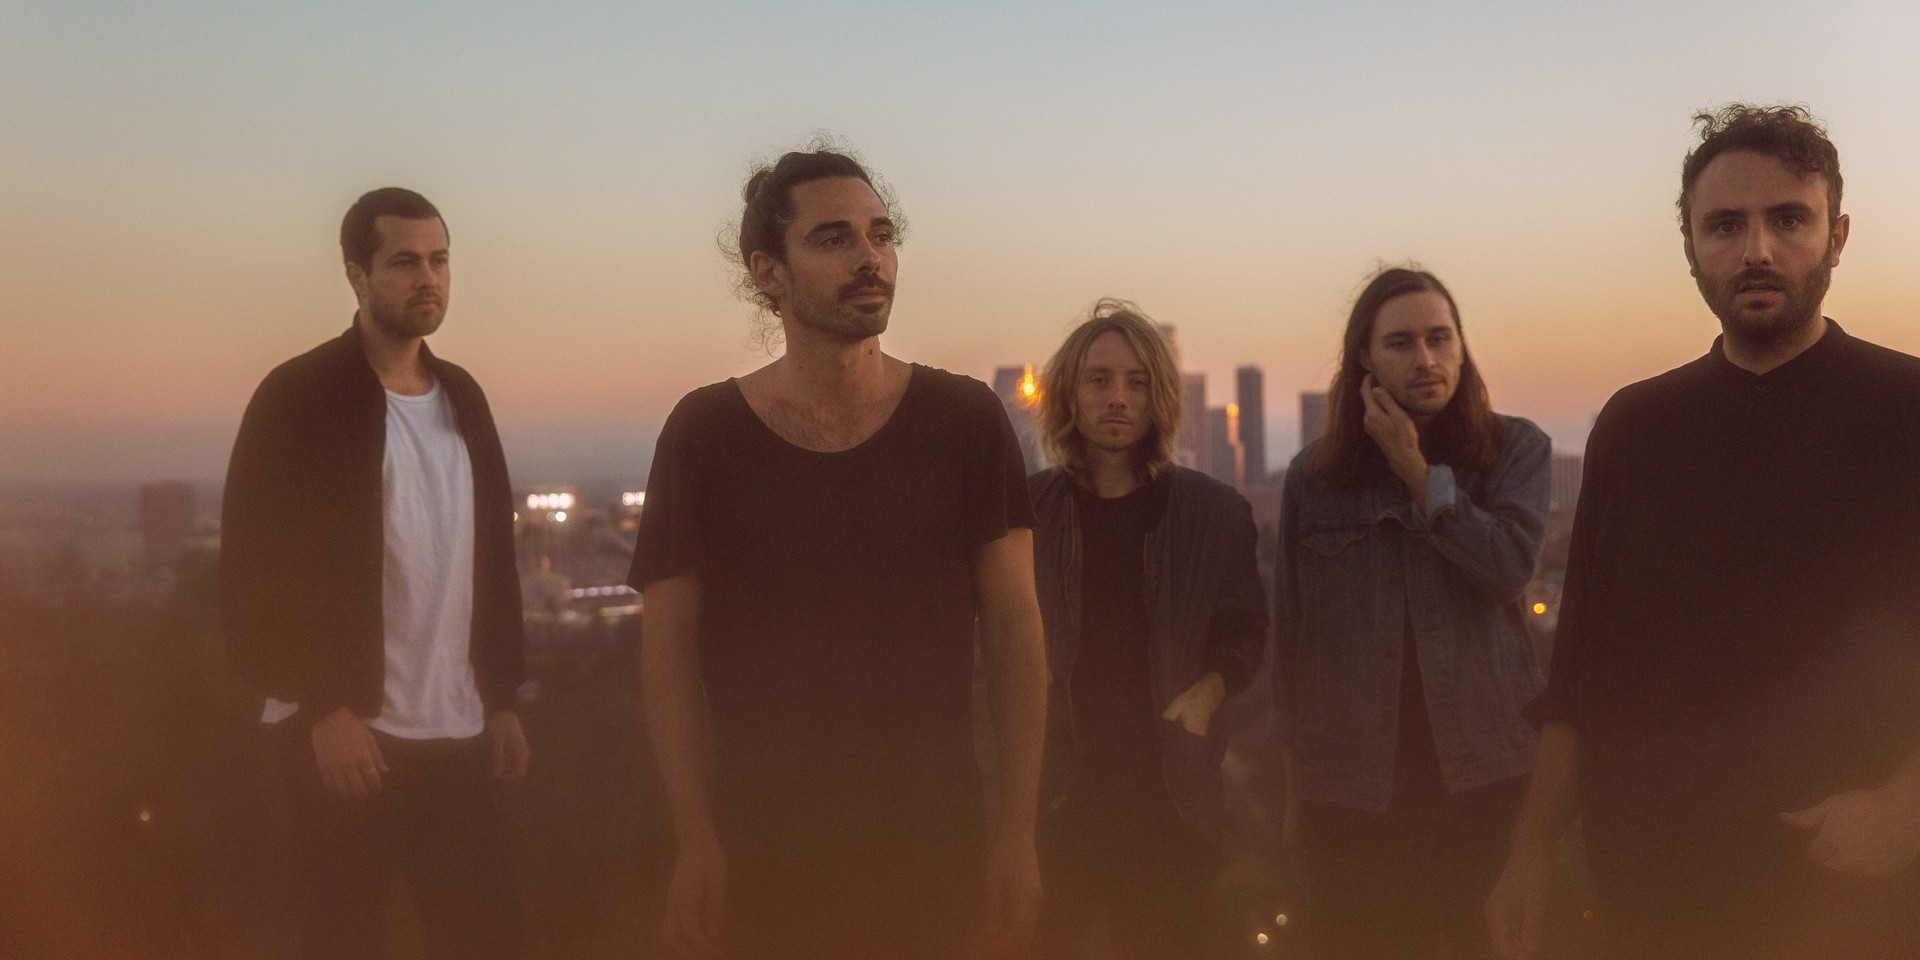 Local Natives will perform in Singapore in July